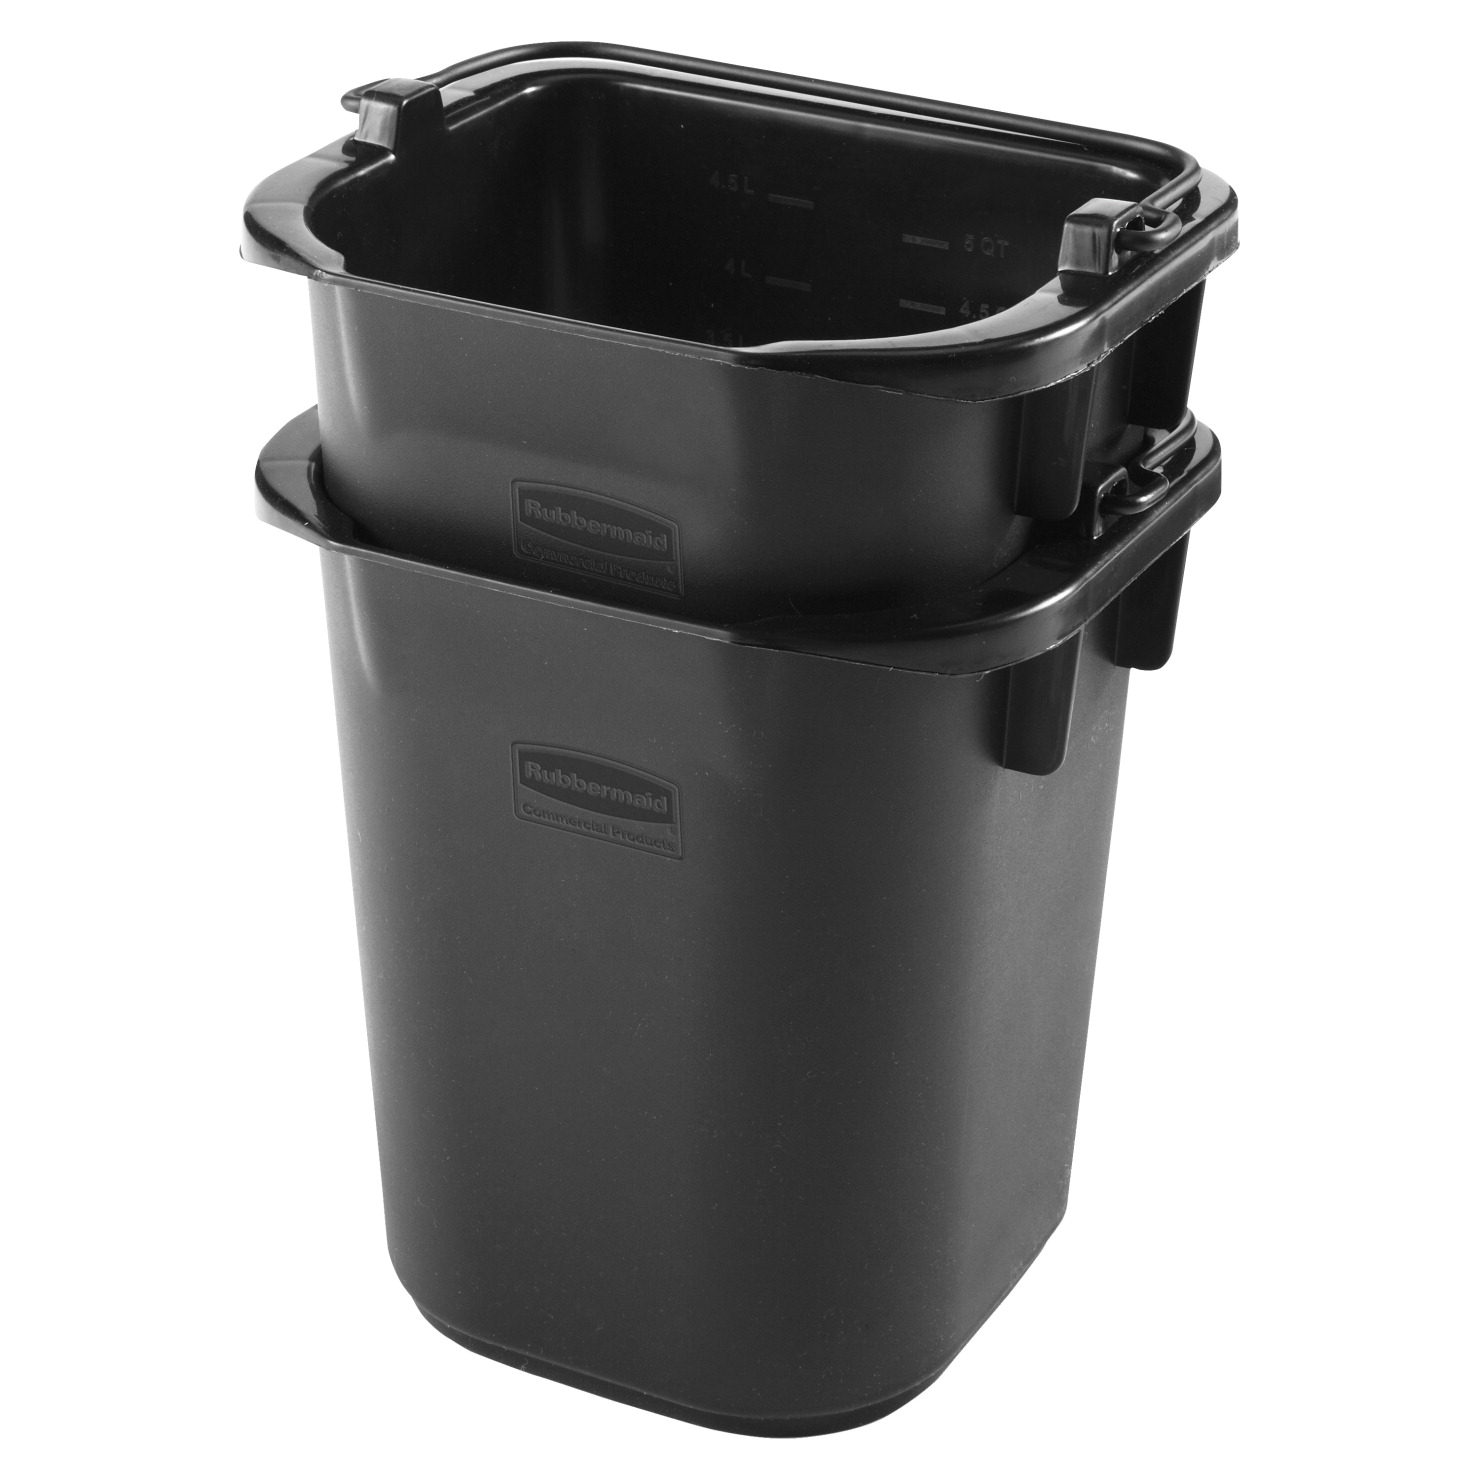 Rubbermaid Commercial Executive 5 Quart Heavy-Duty Pail, 9 x 8-1/2 x 7-1/2 Inches, Black